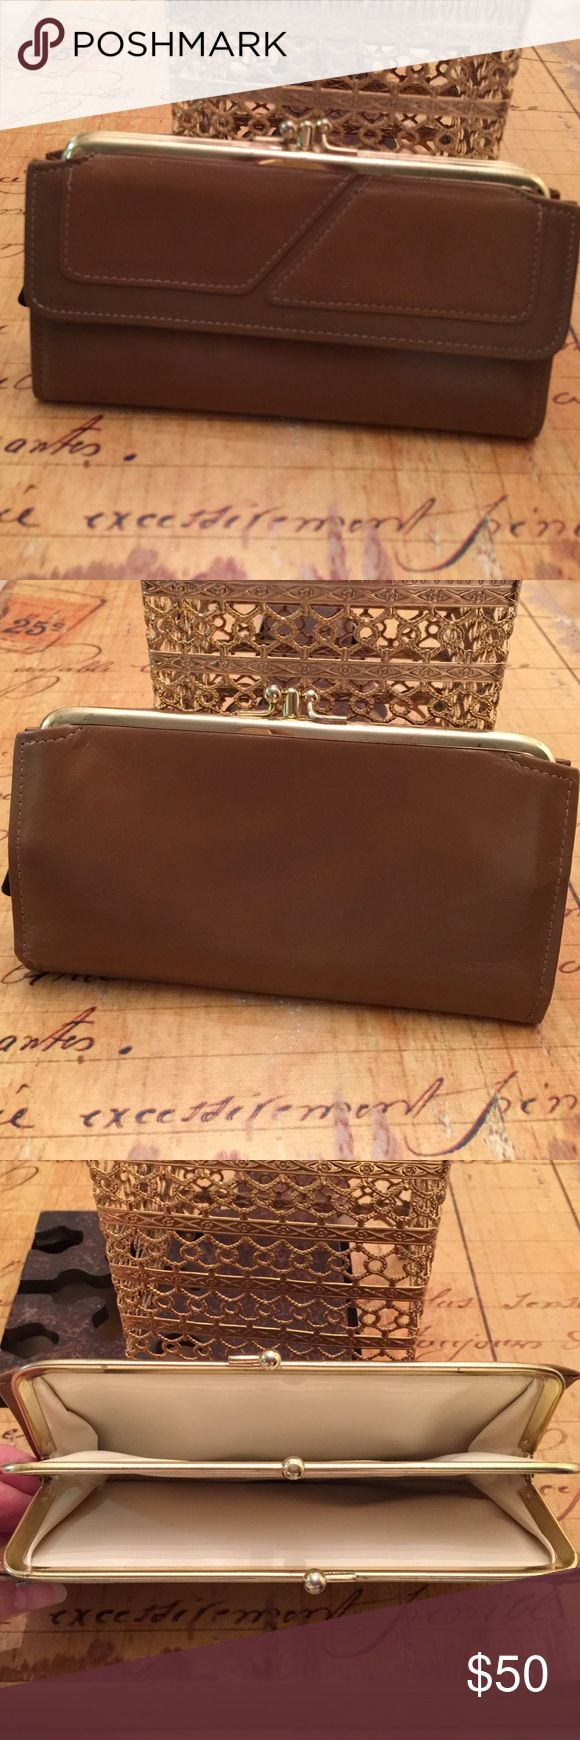 """🇺🇸 P Day Sale 🇺🇸 Vintage ROLFS Wallet Retro Brown ROLFS Genuine Cowhide wallet.  Clutch with 3 sections for change. Money/Checkbook slot with additional Zippered section. Original Charge card keeper.  Appears this has not even been used.   Some markings but this is due to being genuine cowhide leather.   Just over 7"""" wide; 4"""" tall; just under 1"""" deep Vintage Bags Wallets"""